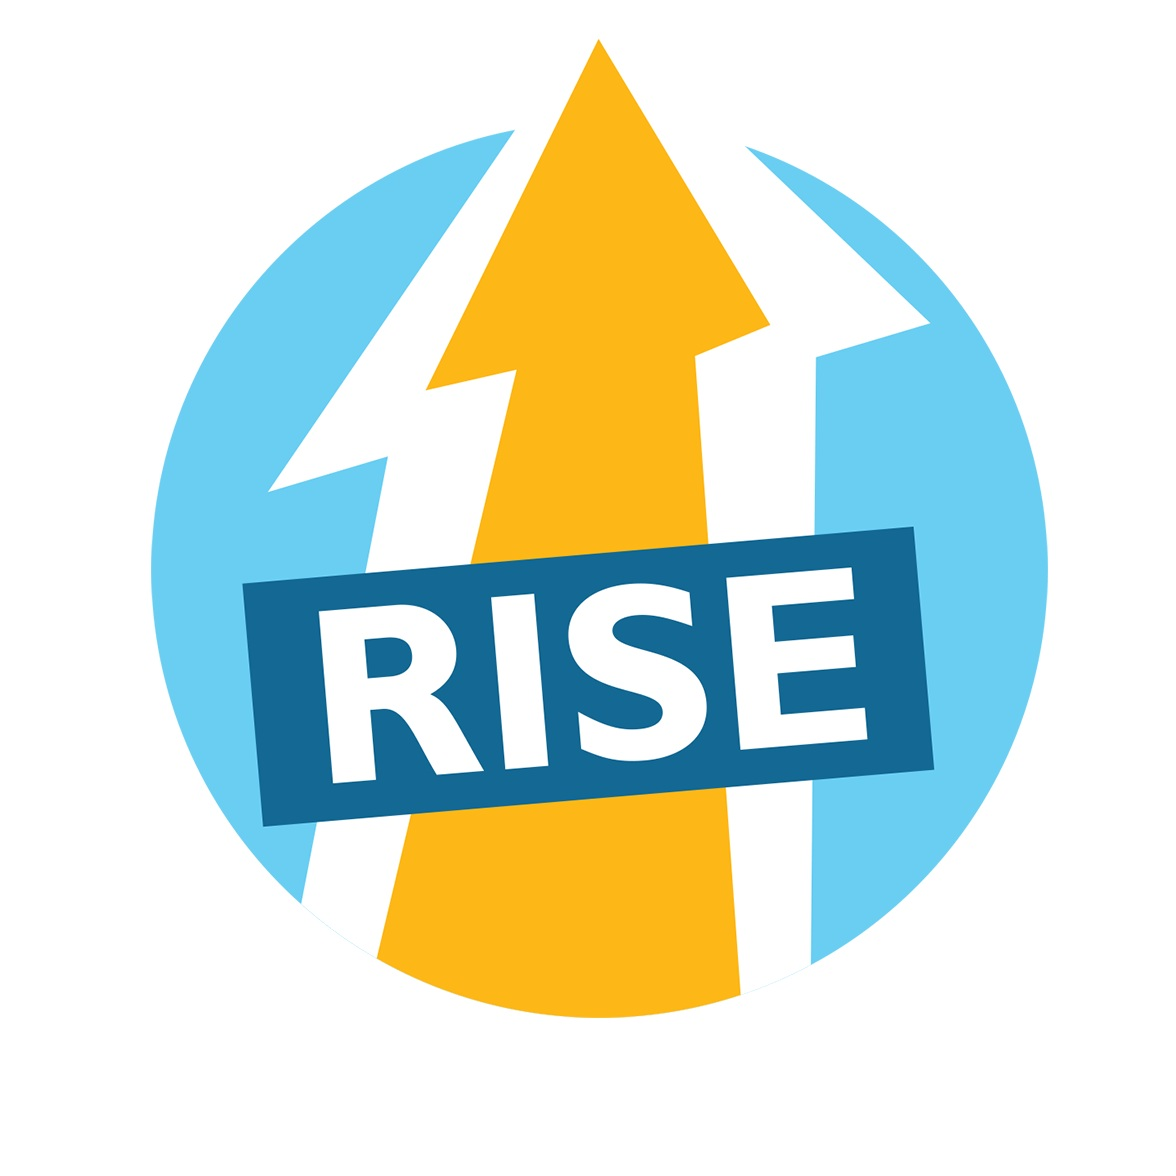 RISE: Change Your World!